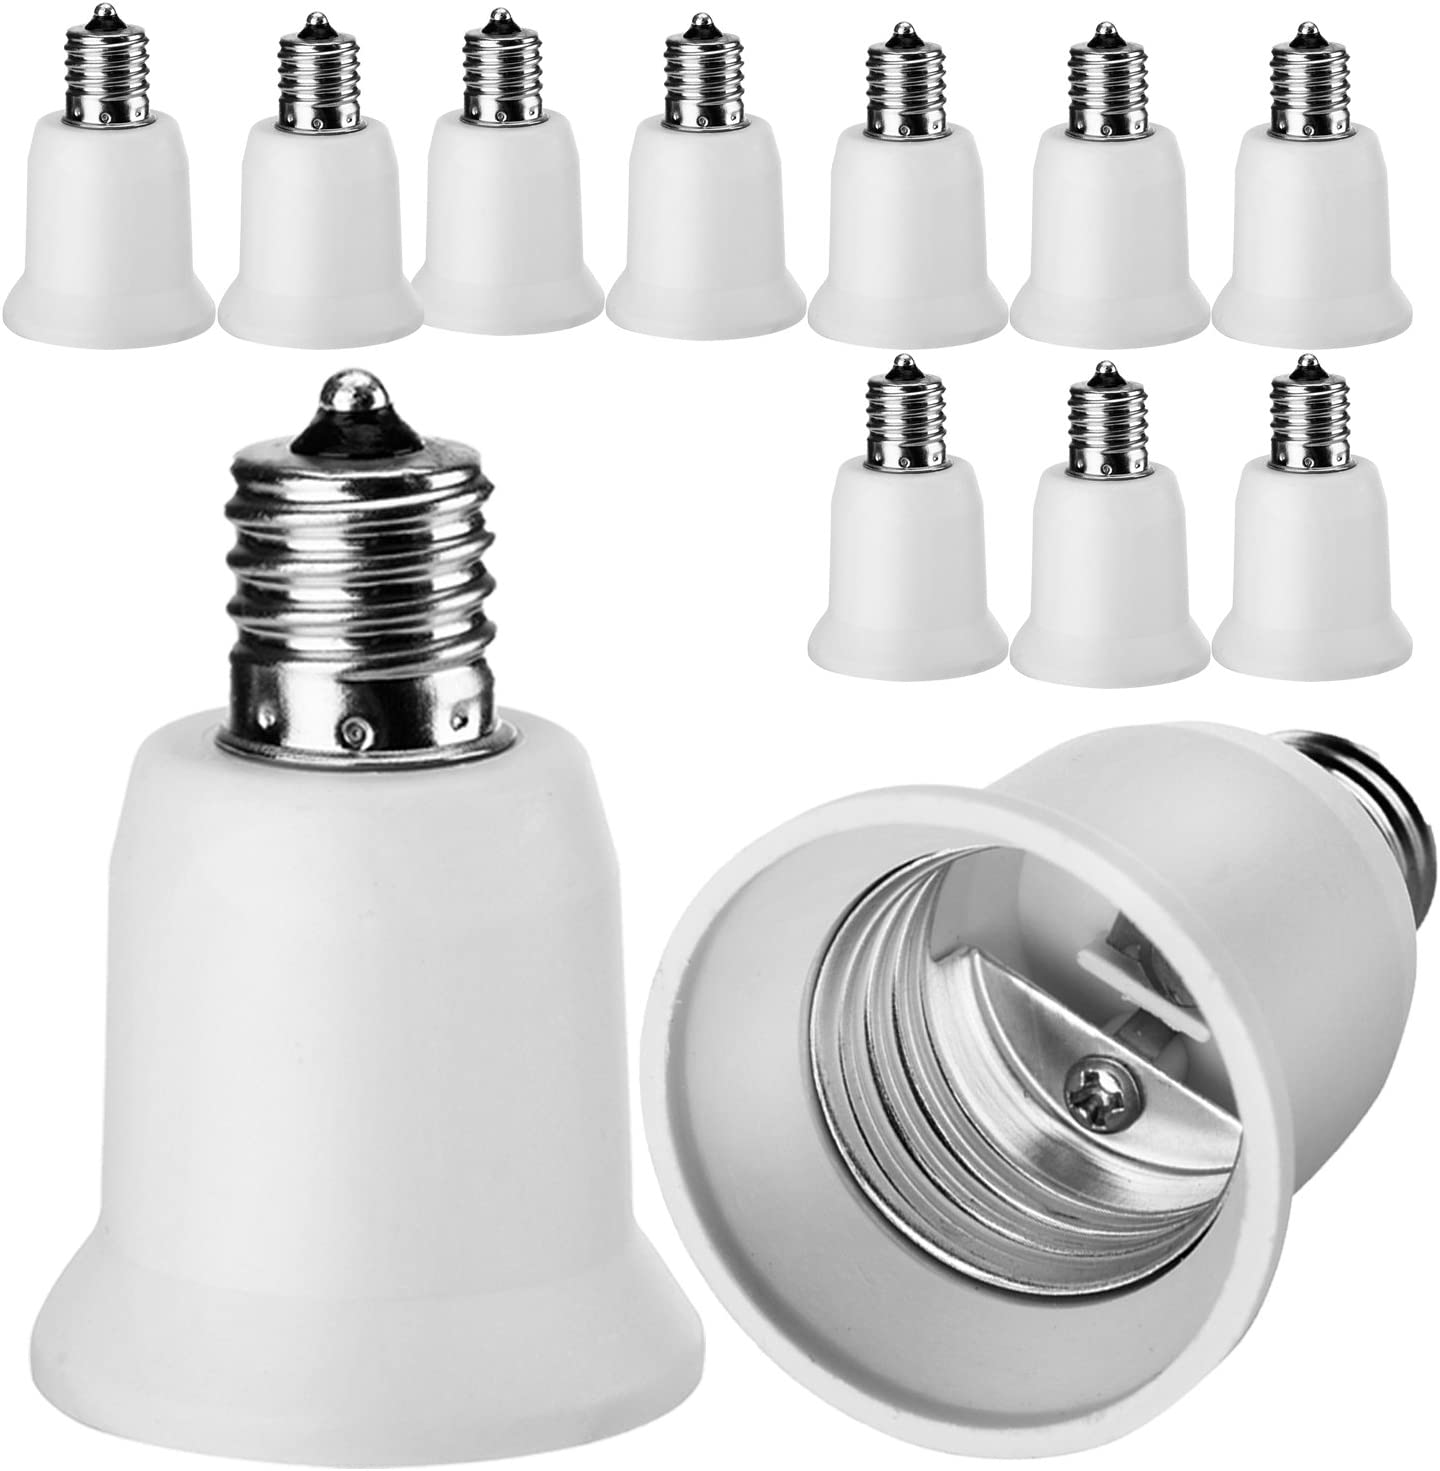 10-Pack E17 to E26 Adapter Converter JACKYLED Chandelier Socket to Medium Socket E17 to E26 Light Socket Adapter Max Wattage 150W